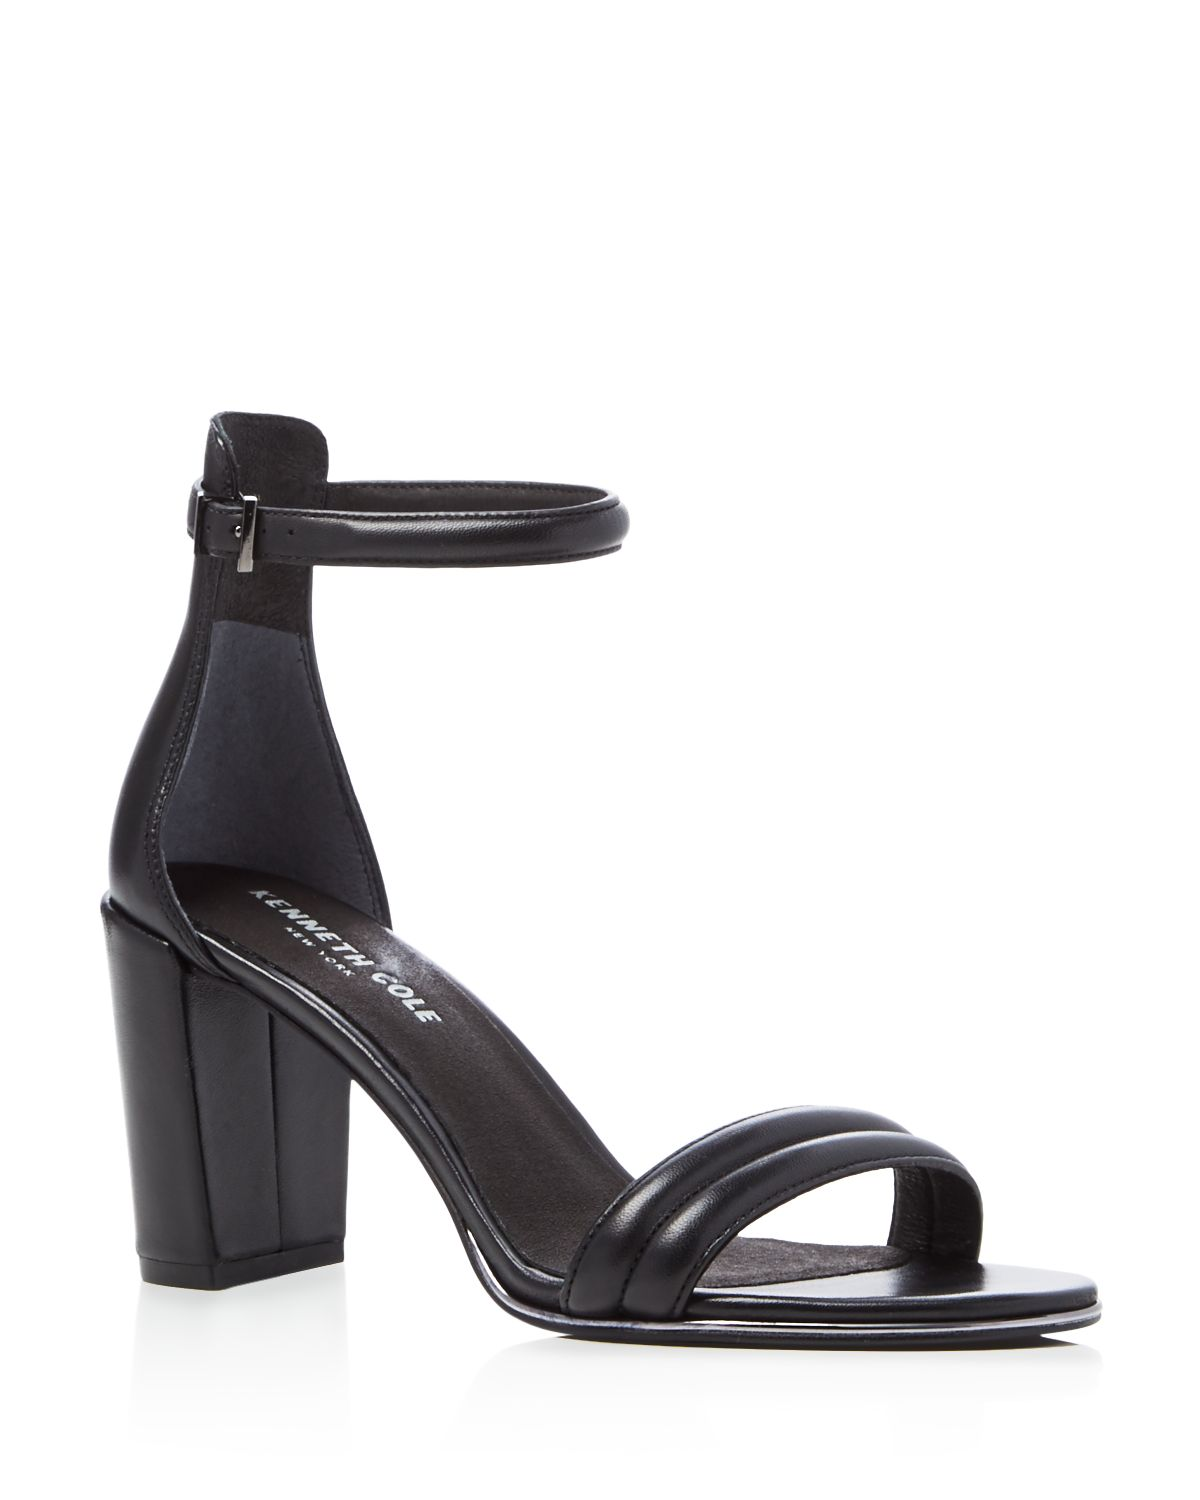 Kenneth Cole Lex Leather Ankle Strap High-Heel Sandals